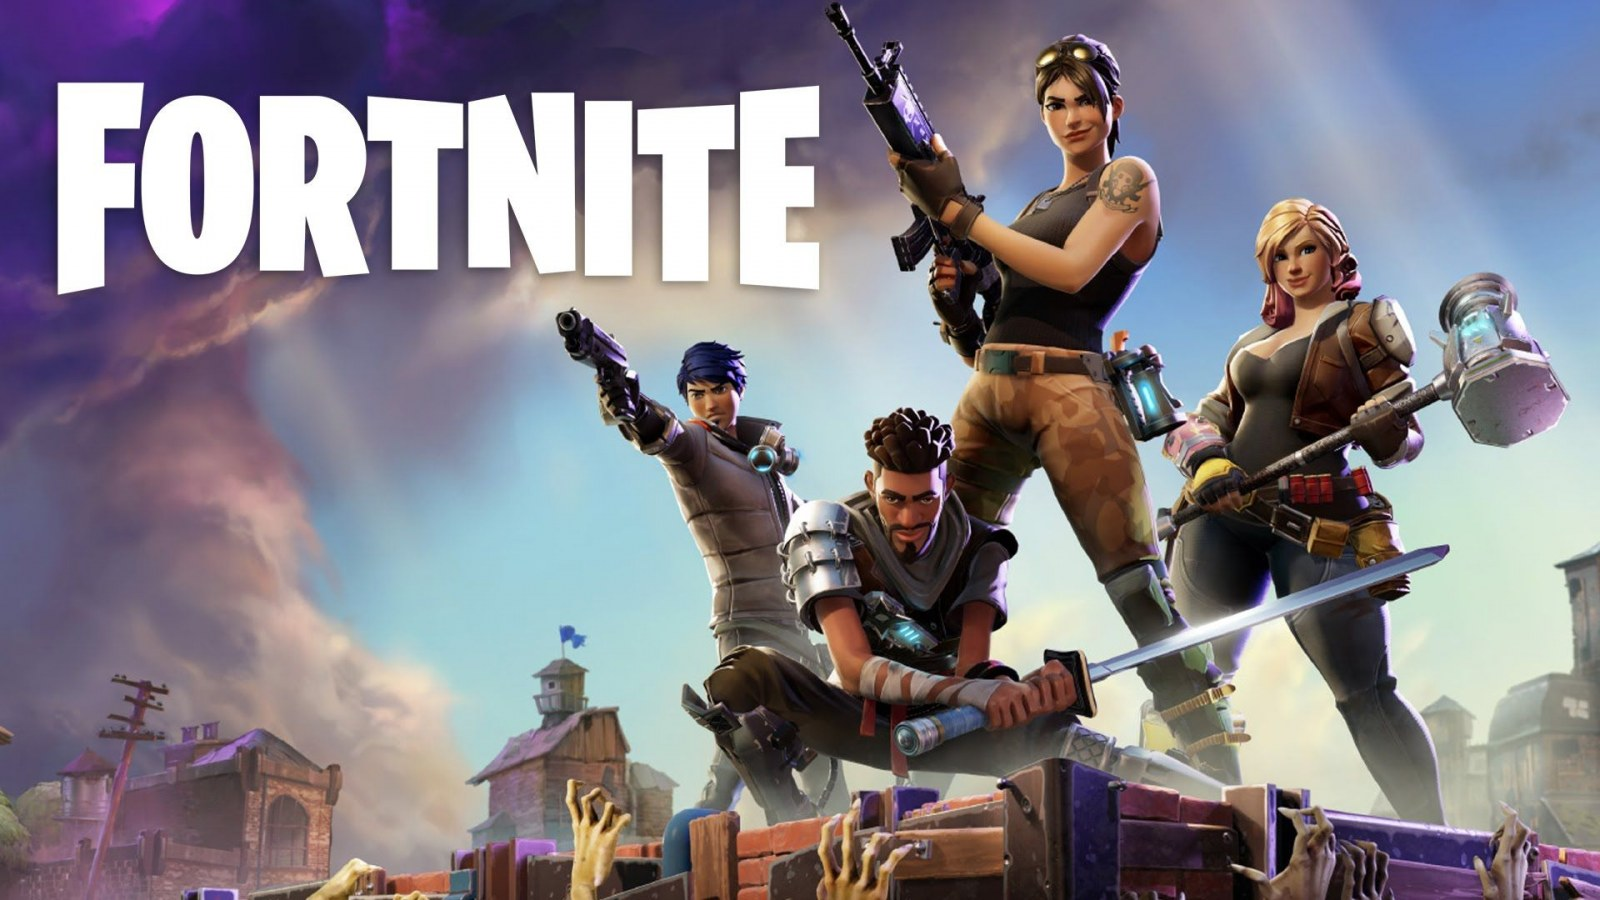 Fortnite' Crossplay: How to Enable Switch, PS4, XBox, PC and